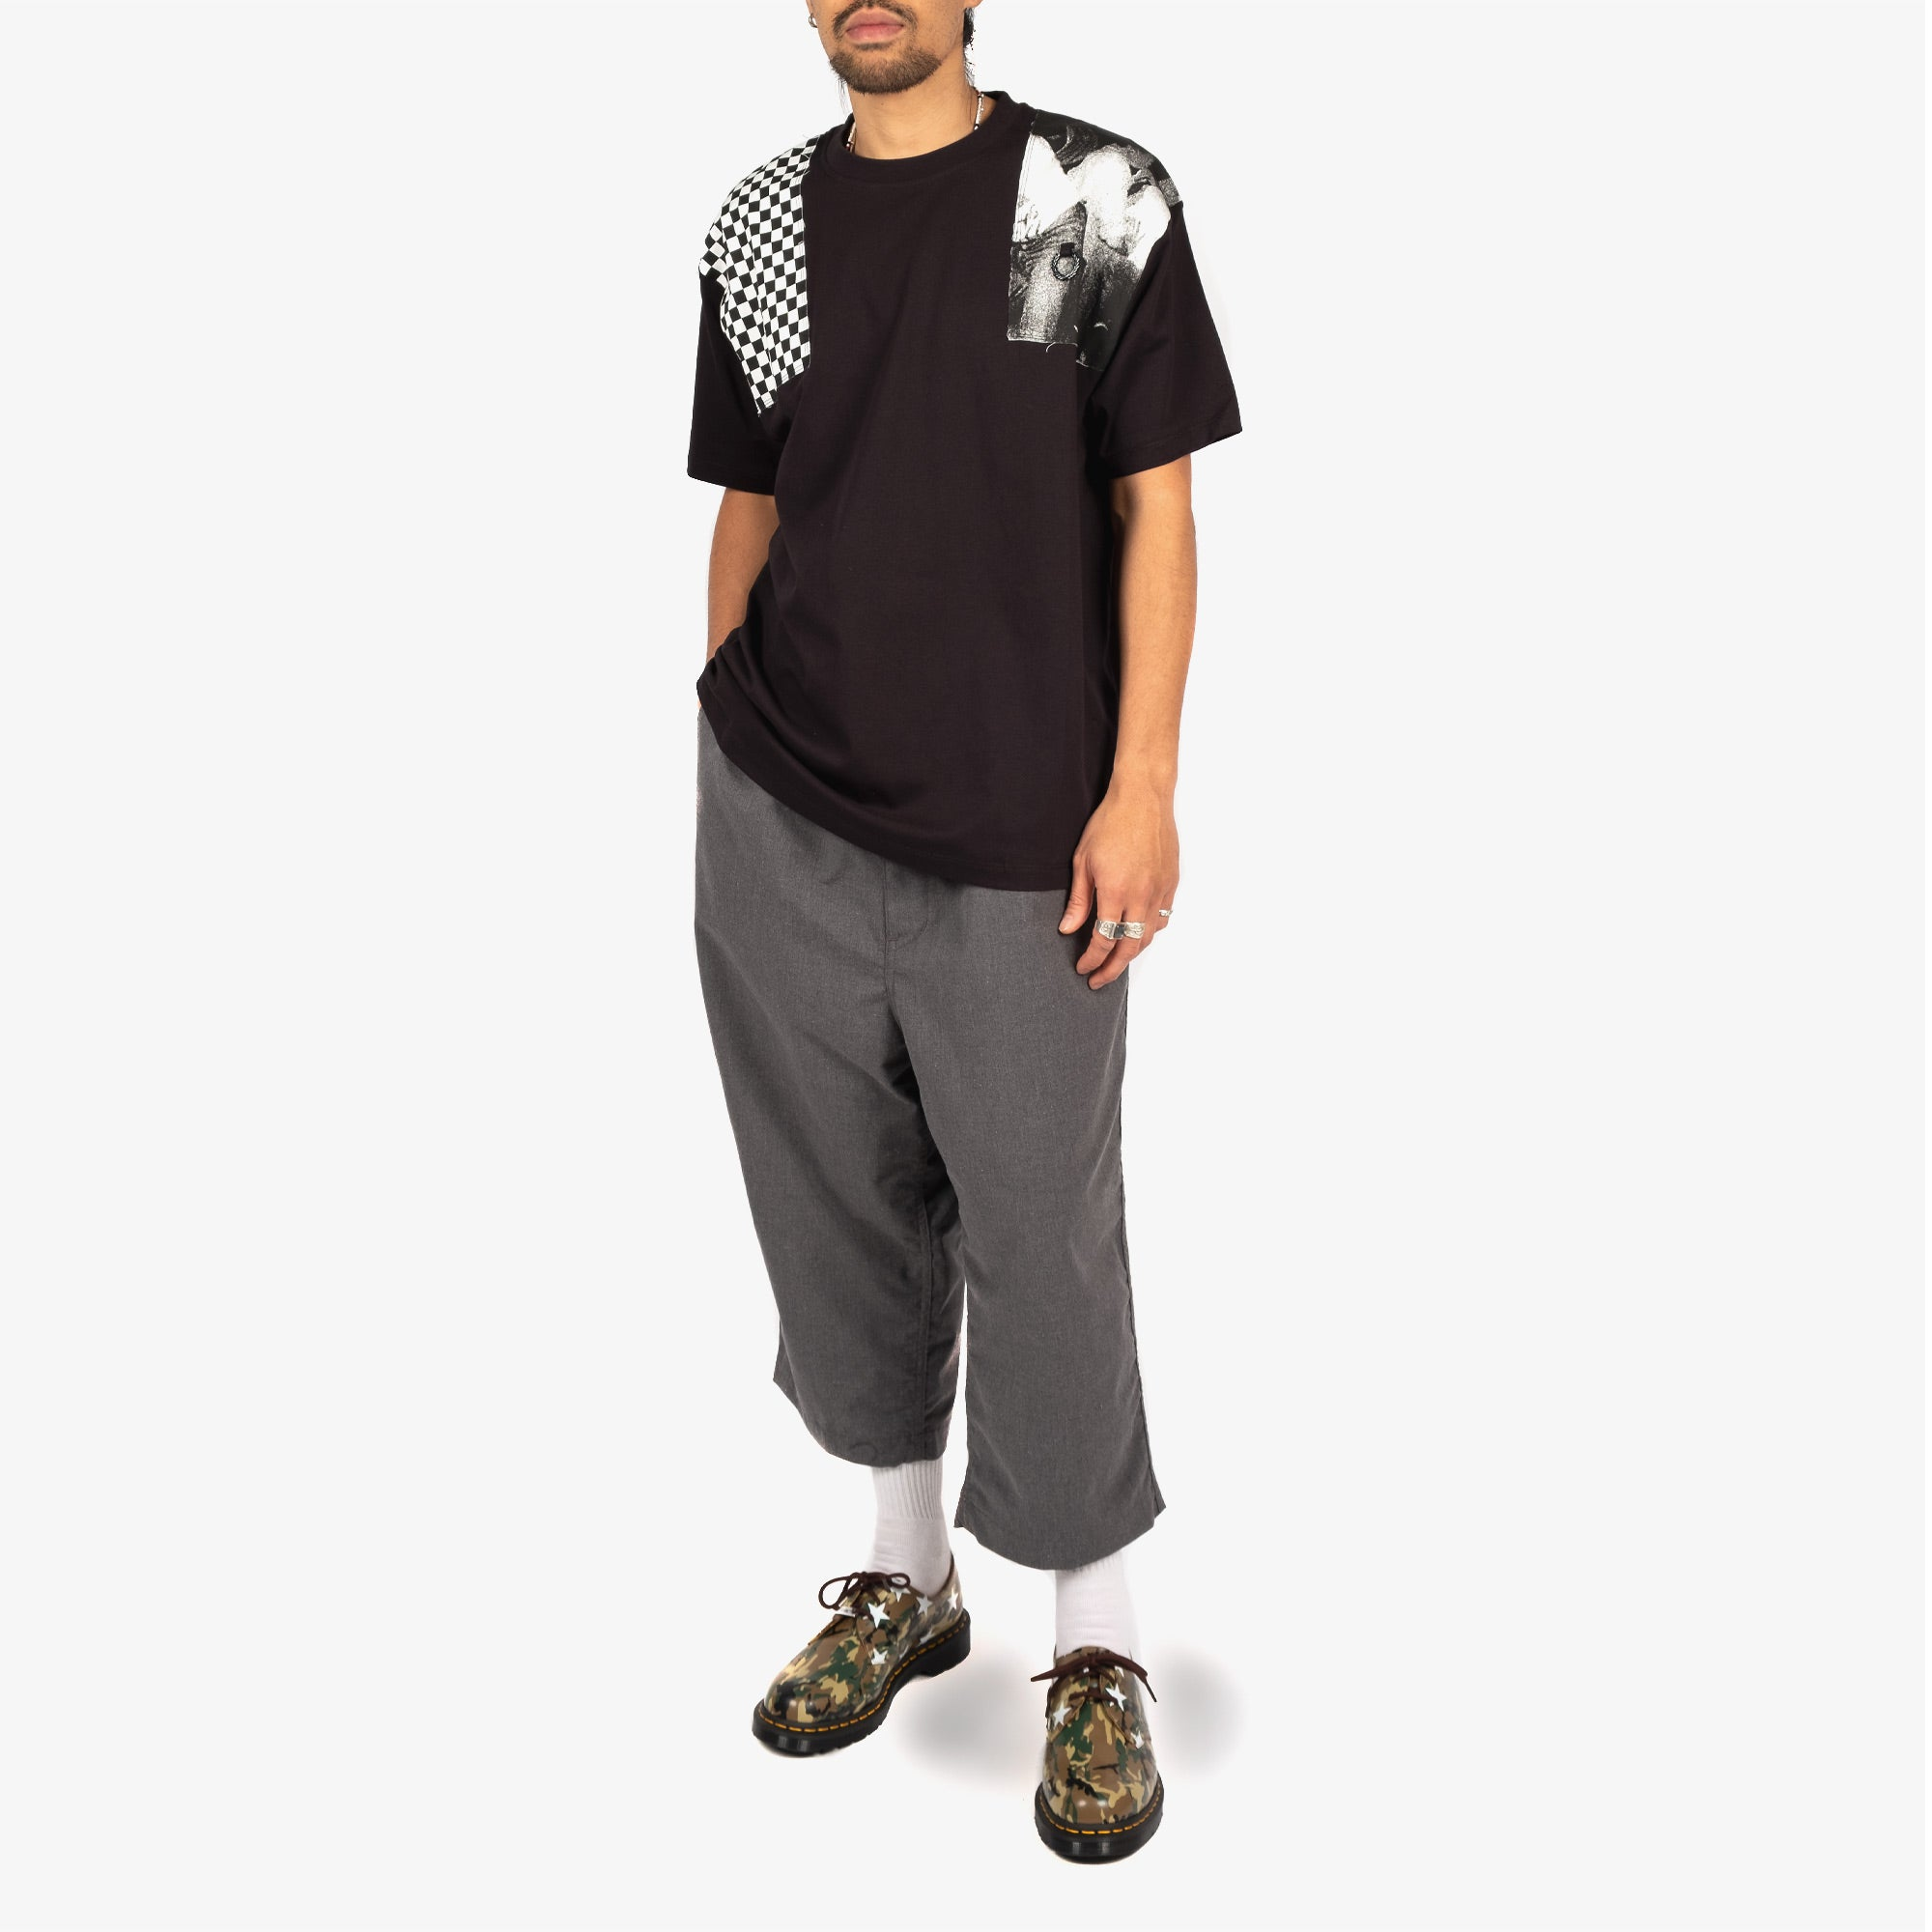 Fred Perry X Raf Simons Oversized Printed Patch Tee - Black 6